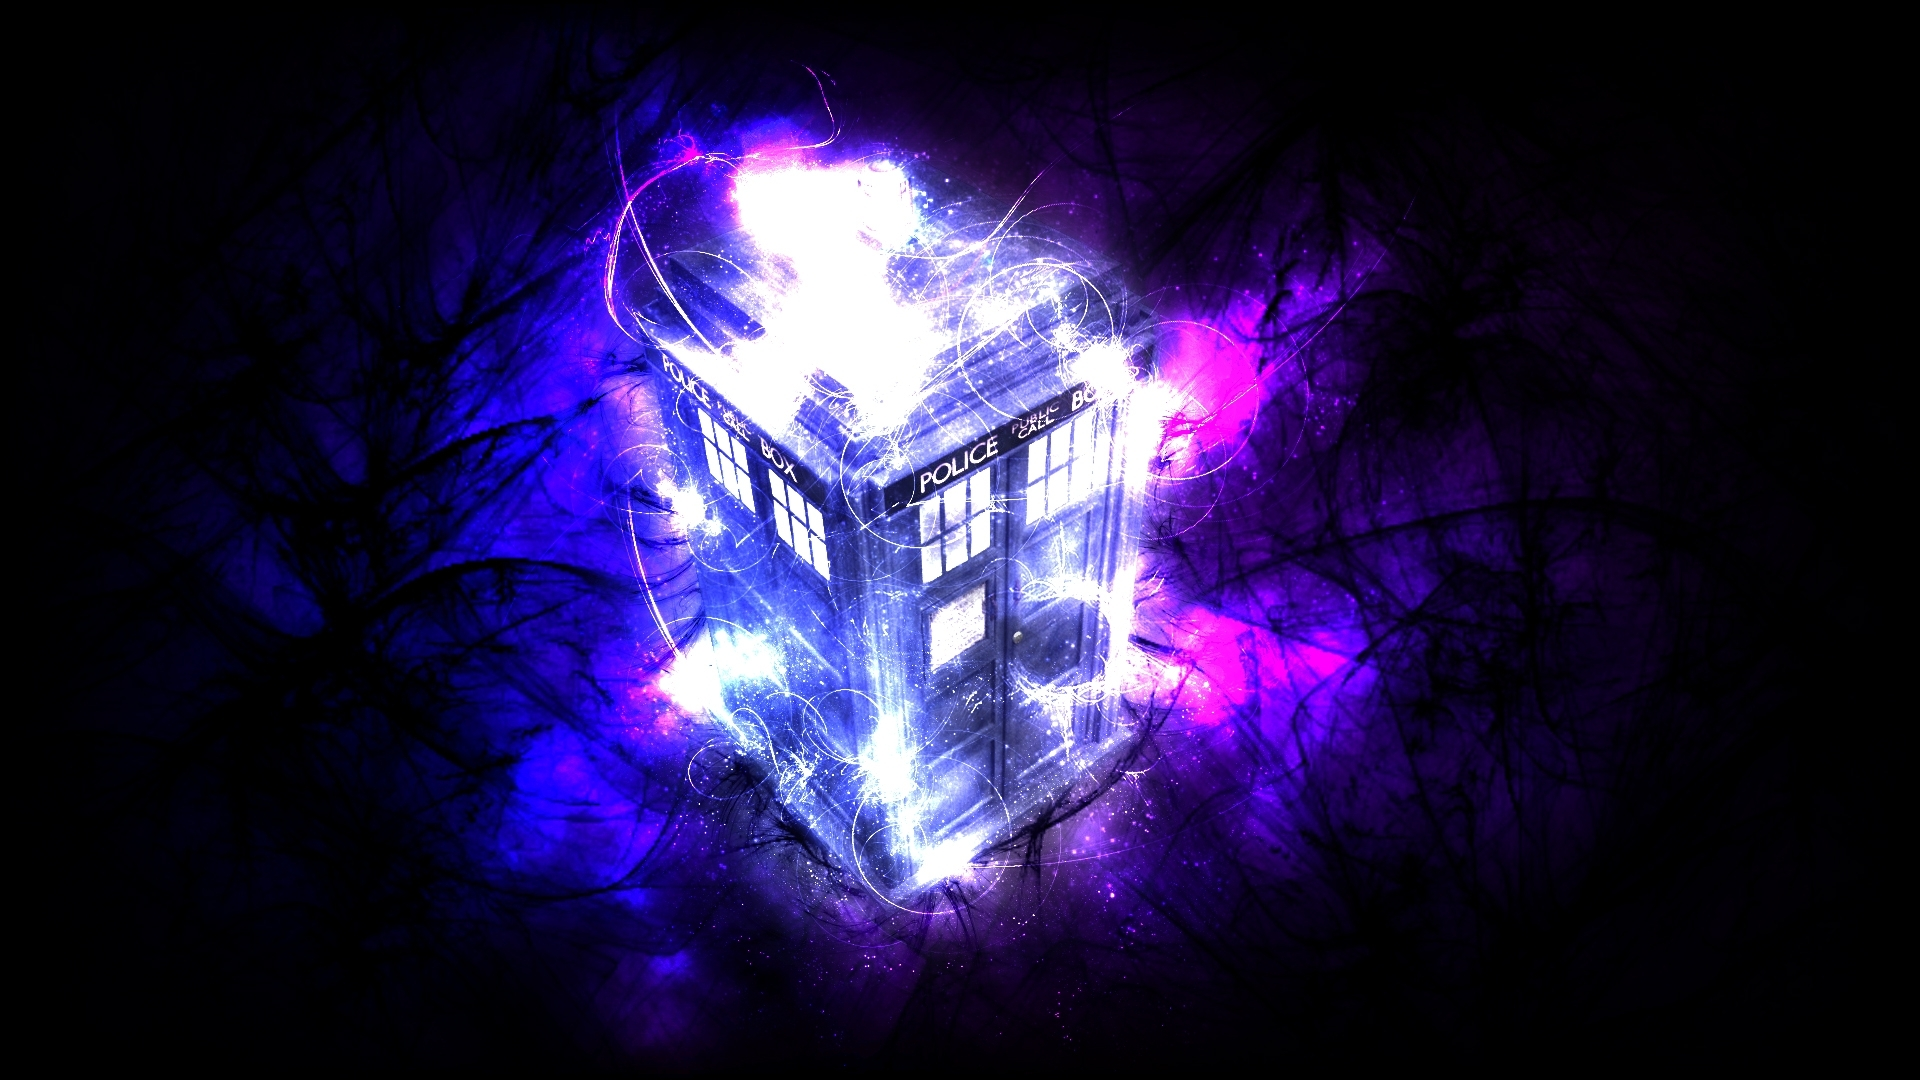 tardis magic full hd wallpaper and background image | 1920x1080 | id